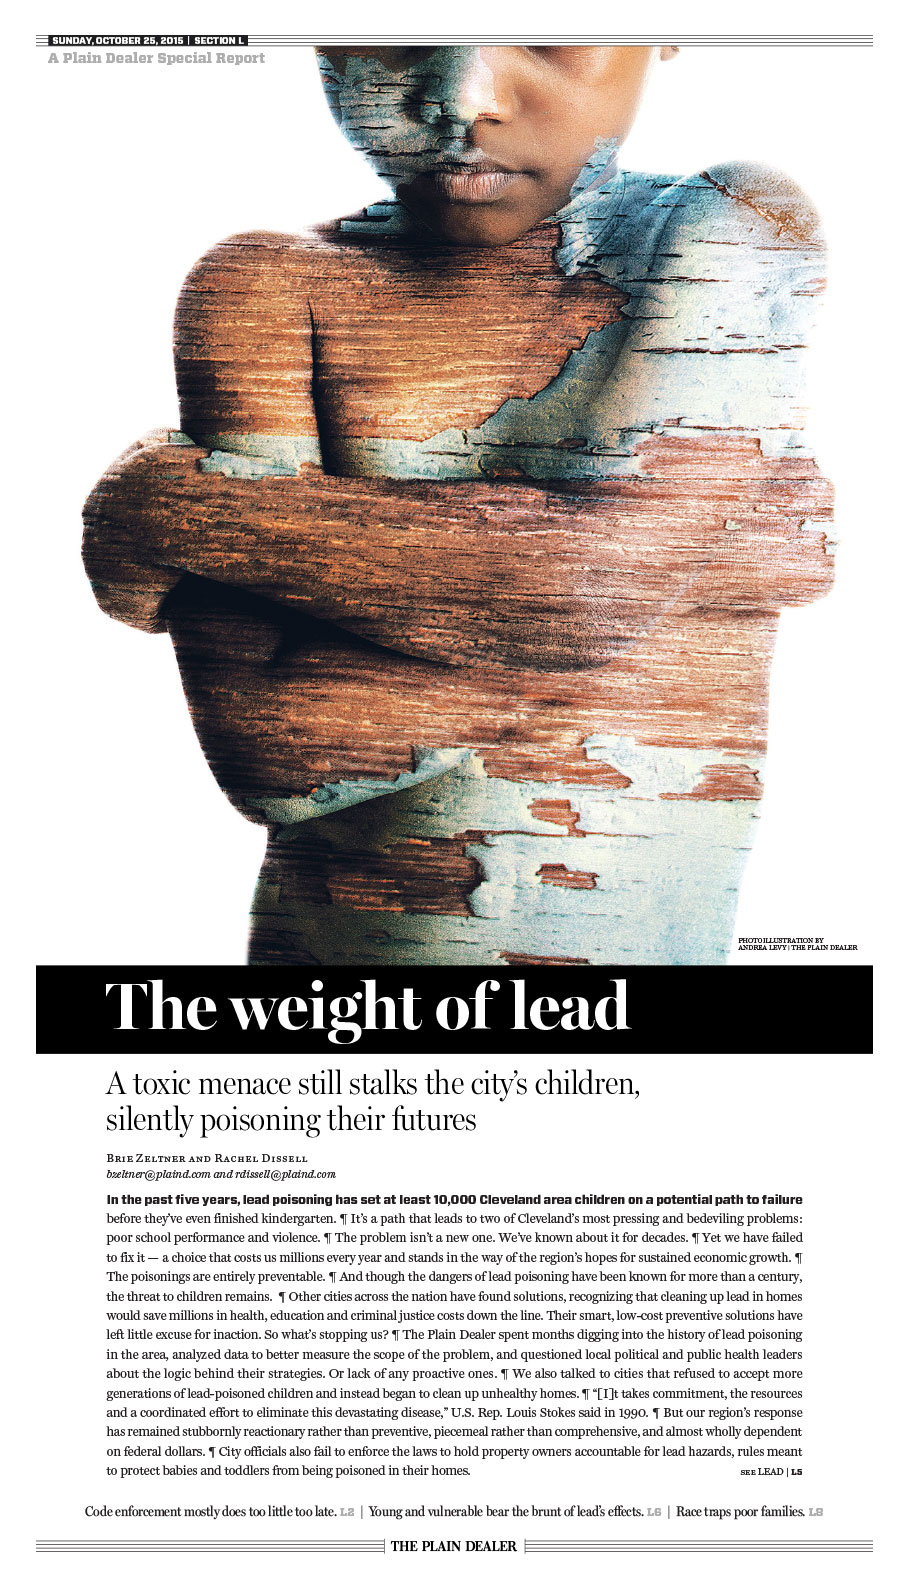 The Weight of Lead